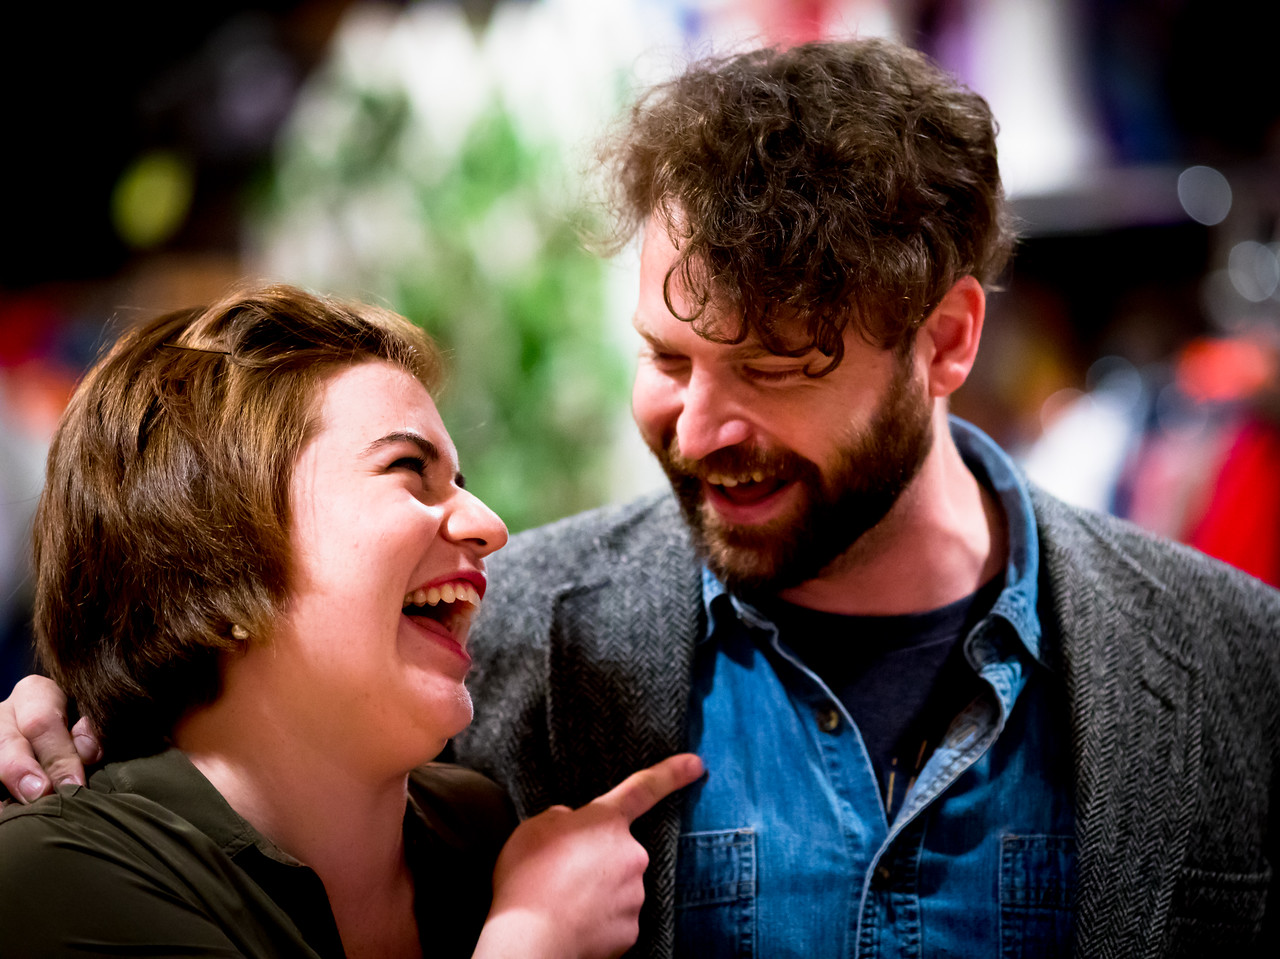 Allie Babich (Nathaniel) and Josh Innerst (Holofernes) in rehearsal for LOVE'S LABOUR'S LOST. Photo by Jay McClure.